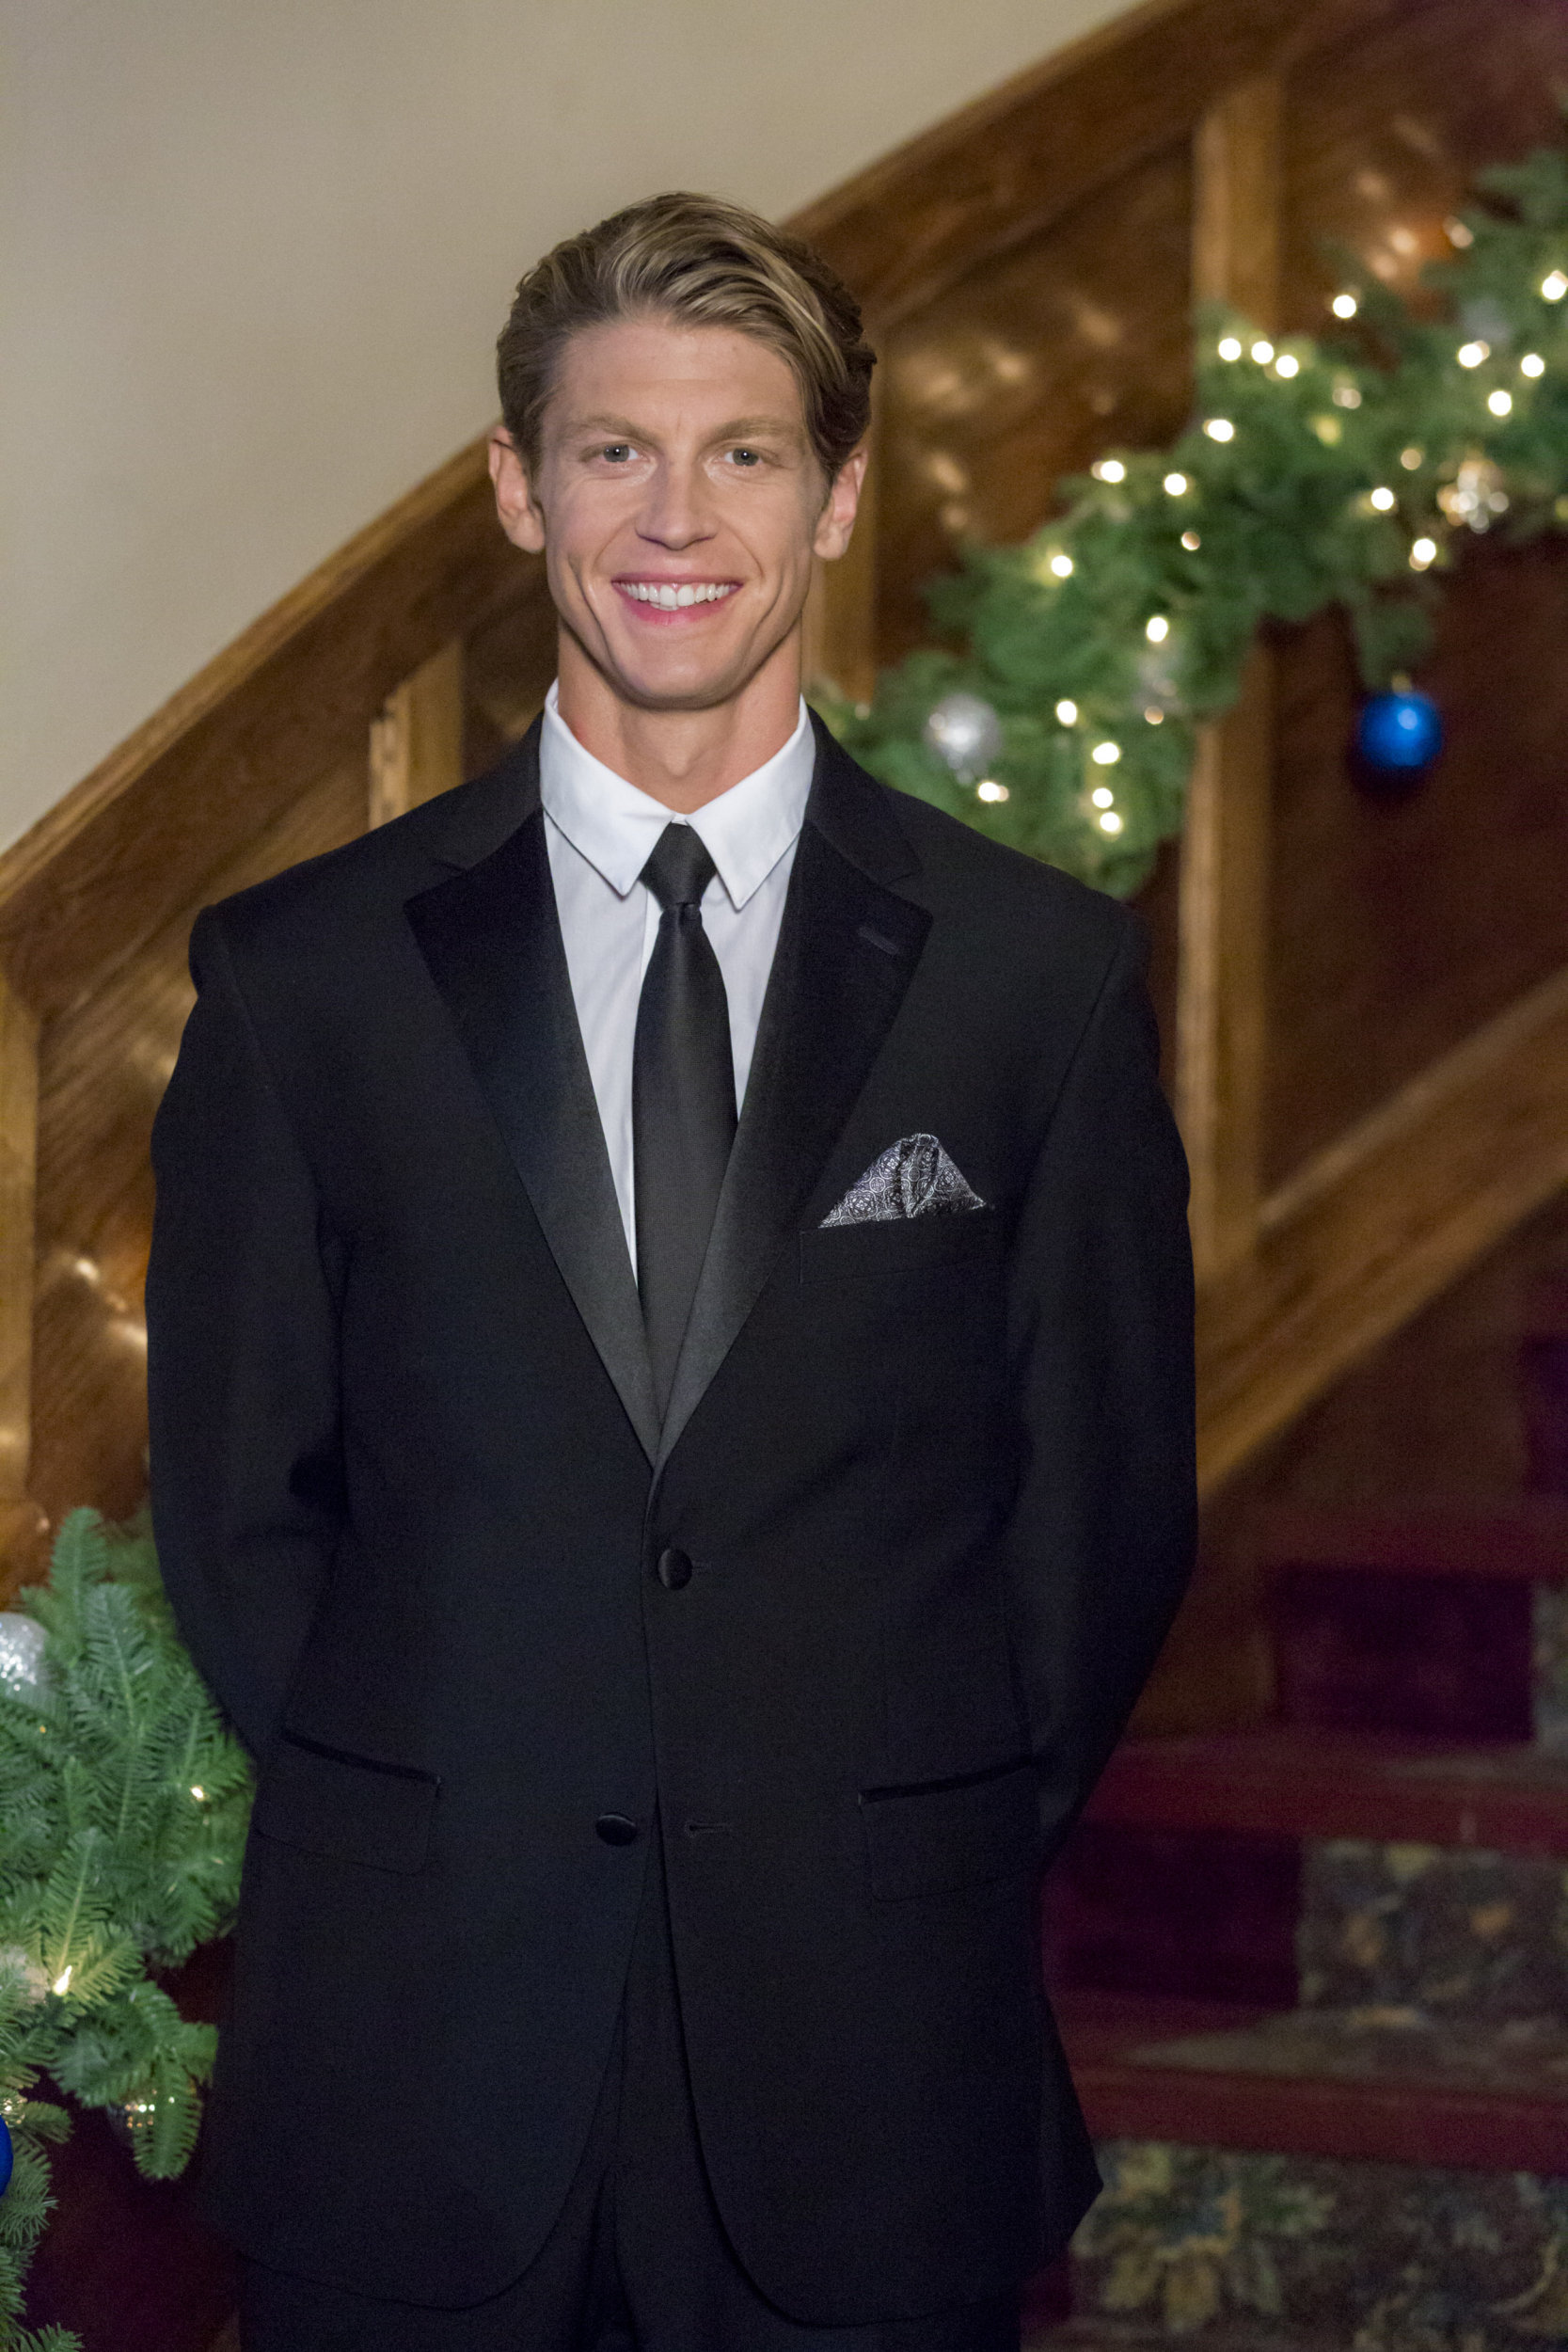 andrew francis as kip marley on coming home for christmas hallmark channel - Coming Home For Christmas